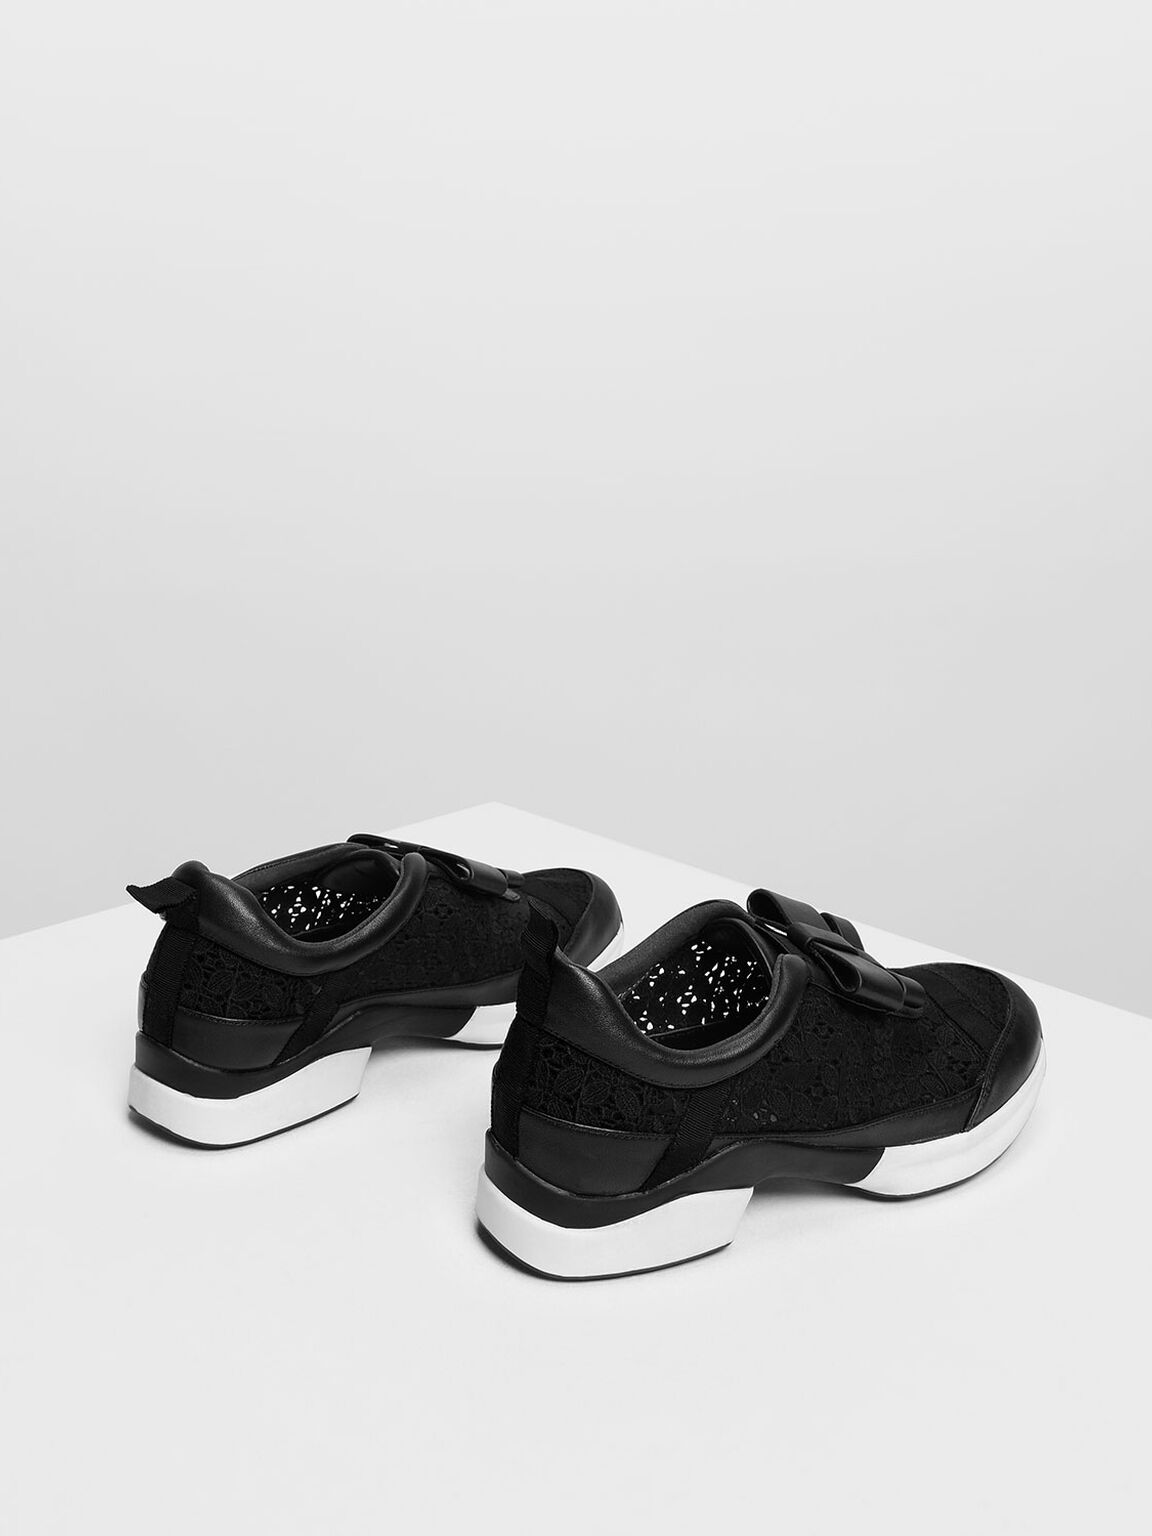 Leather Bow Crochet Slip-On Sneakers, Black, hi-res